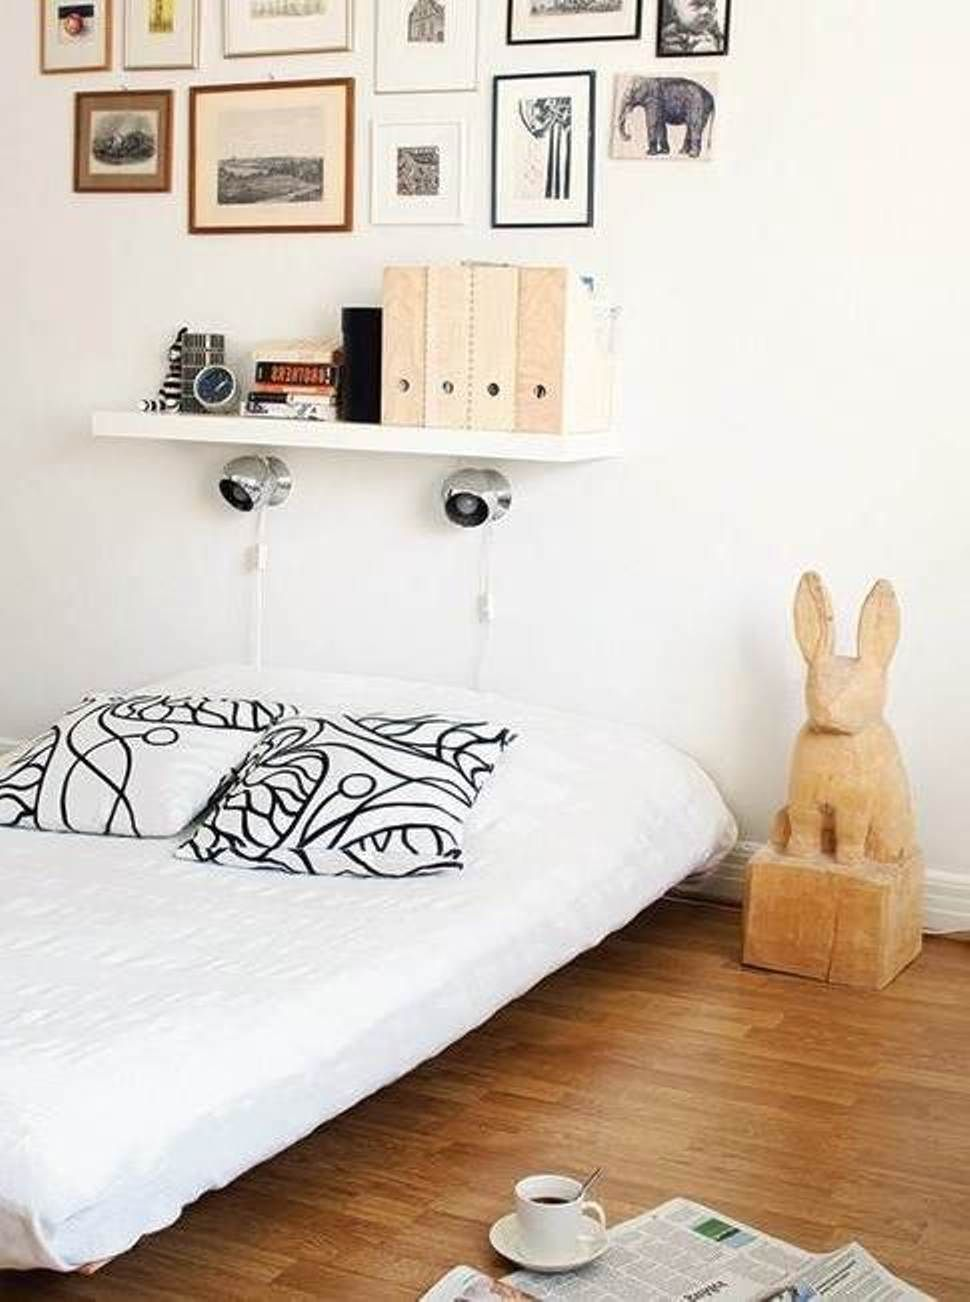 How to Arrange a Bedroom Furniture? (With images